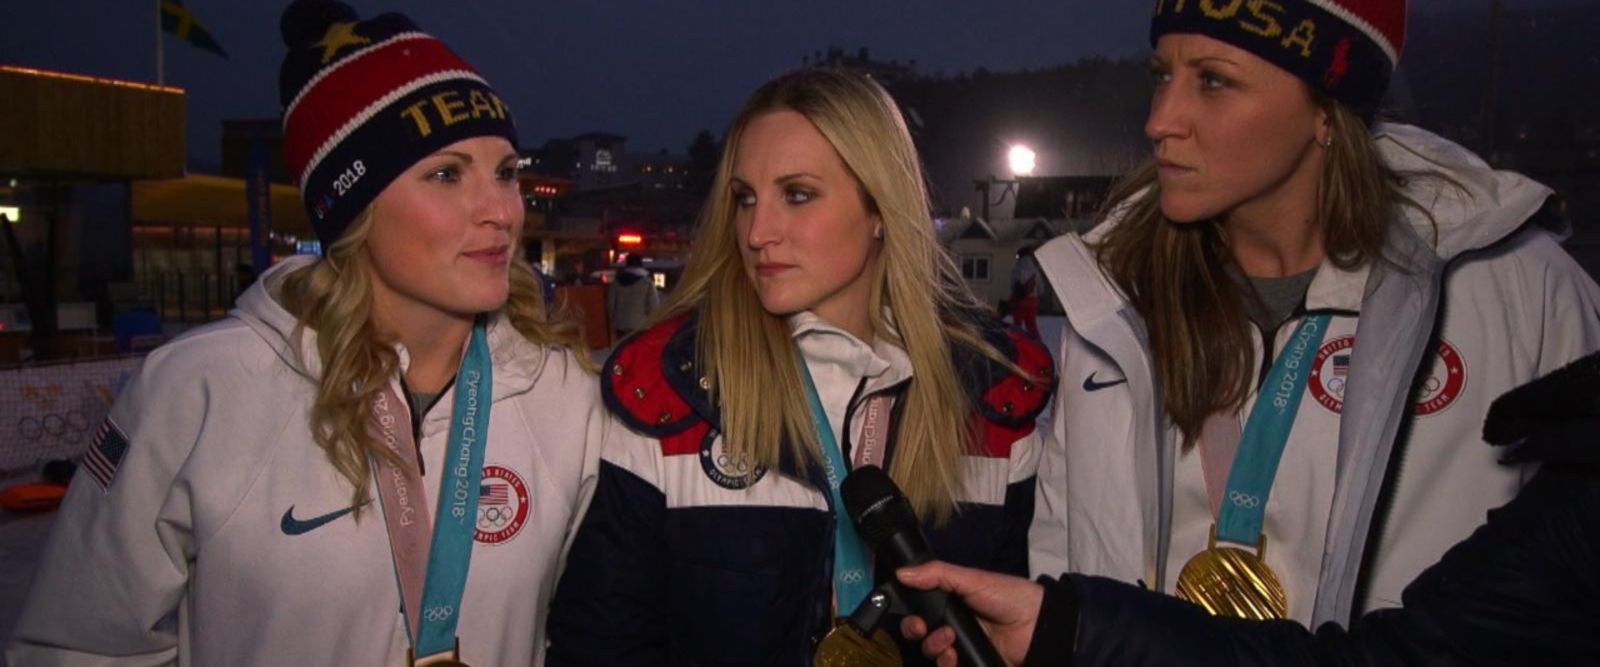 VIDEO: Meet the women taking home the medals at the Olympic Winter Games